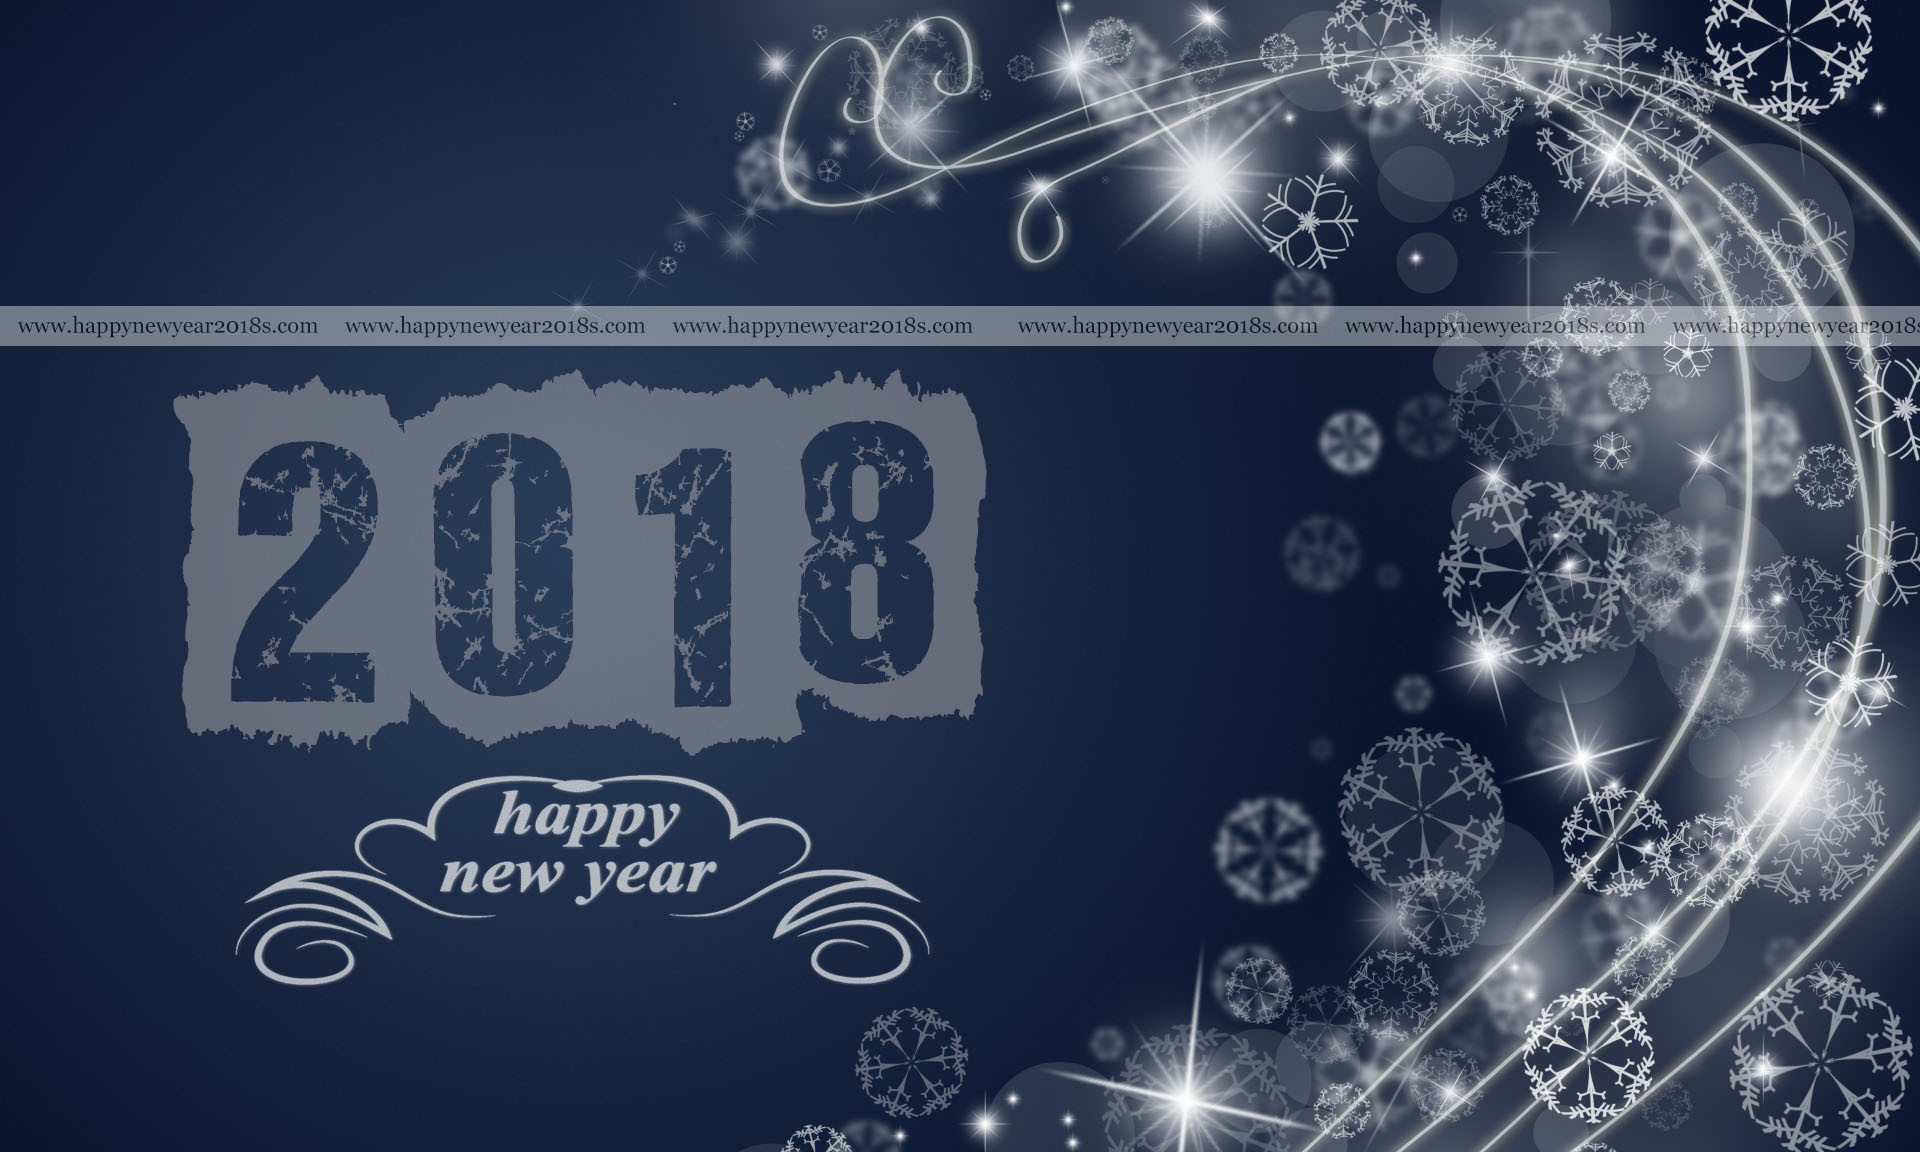 happy new year 2019 facebook cover pictures